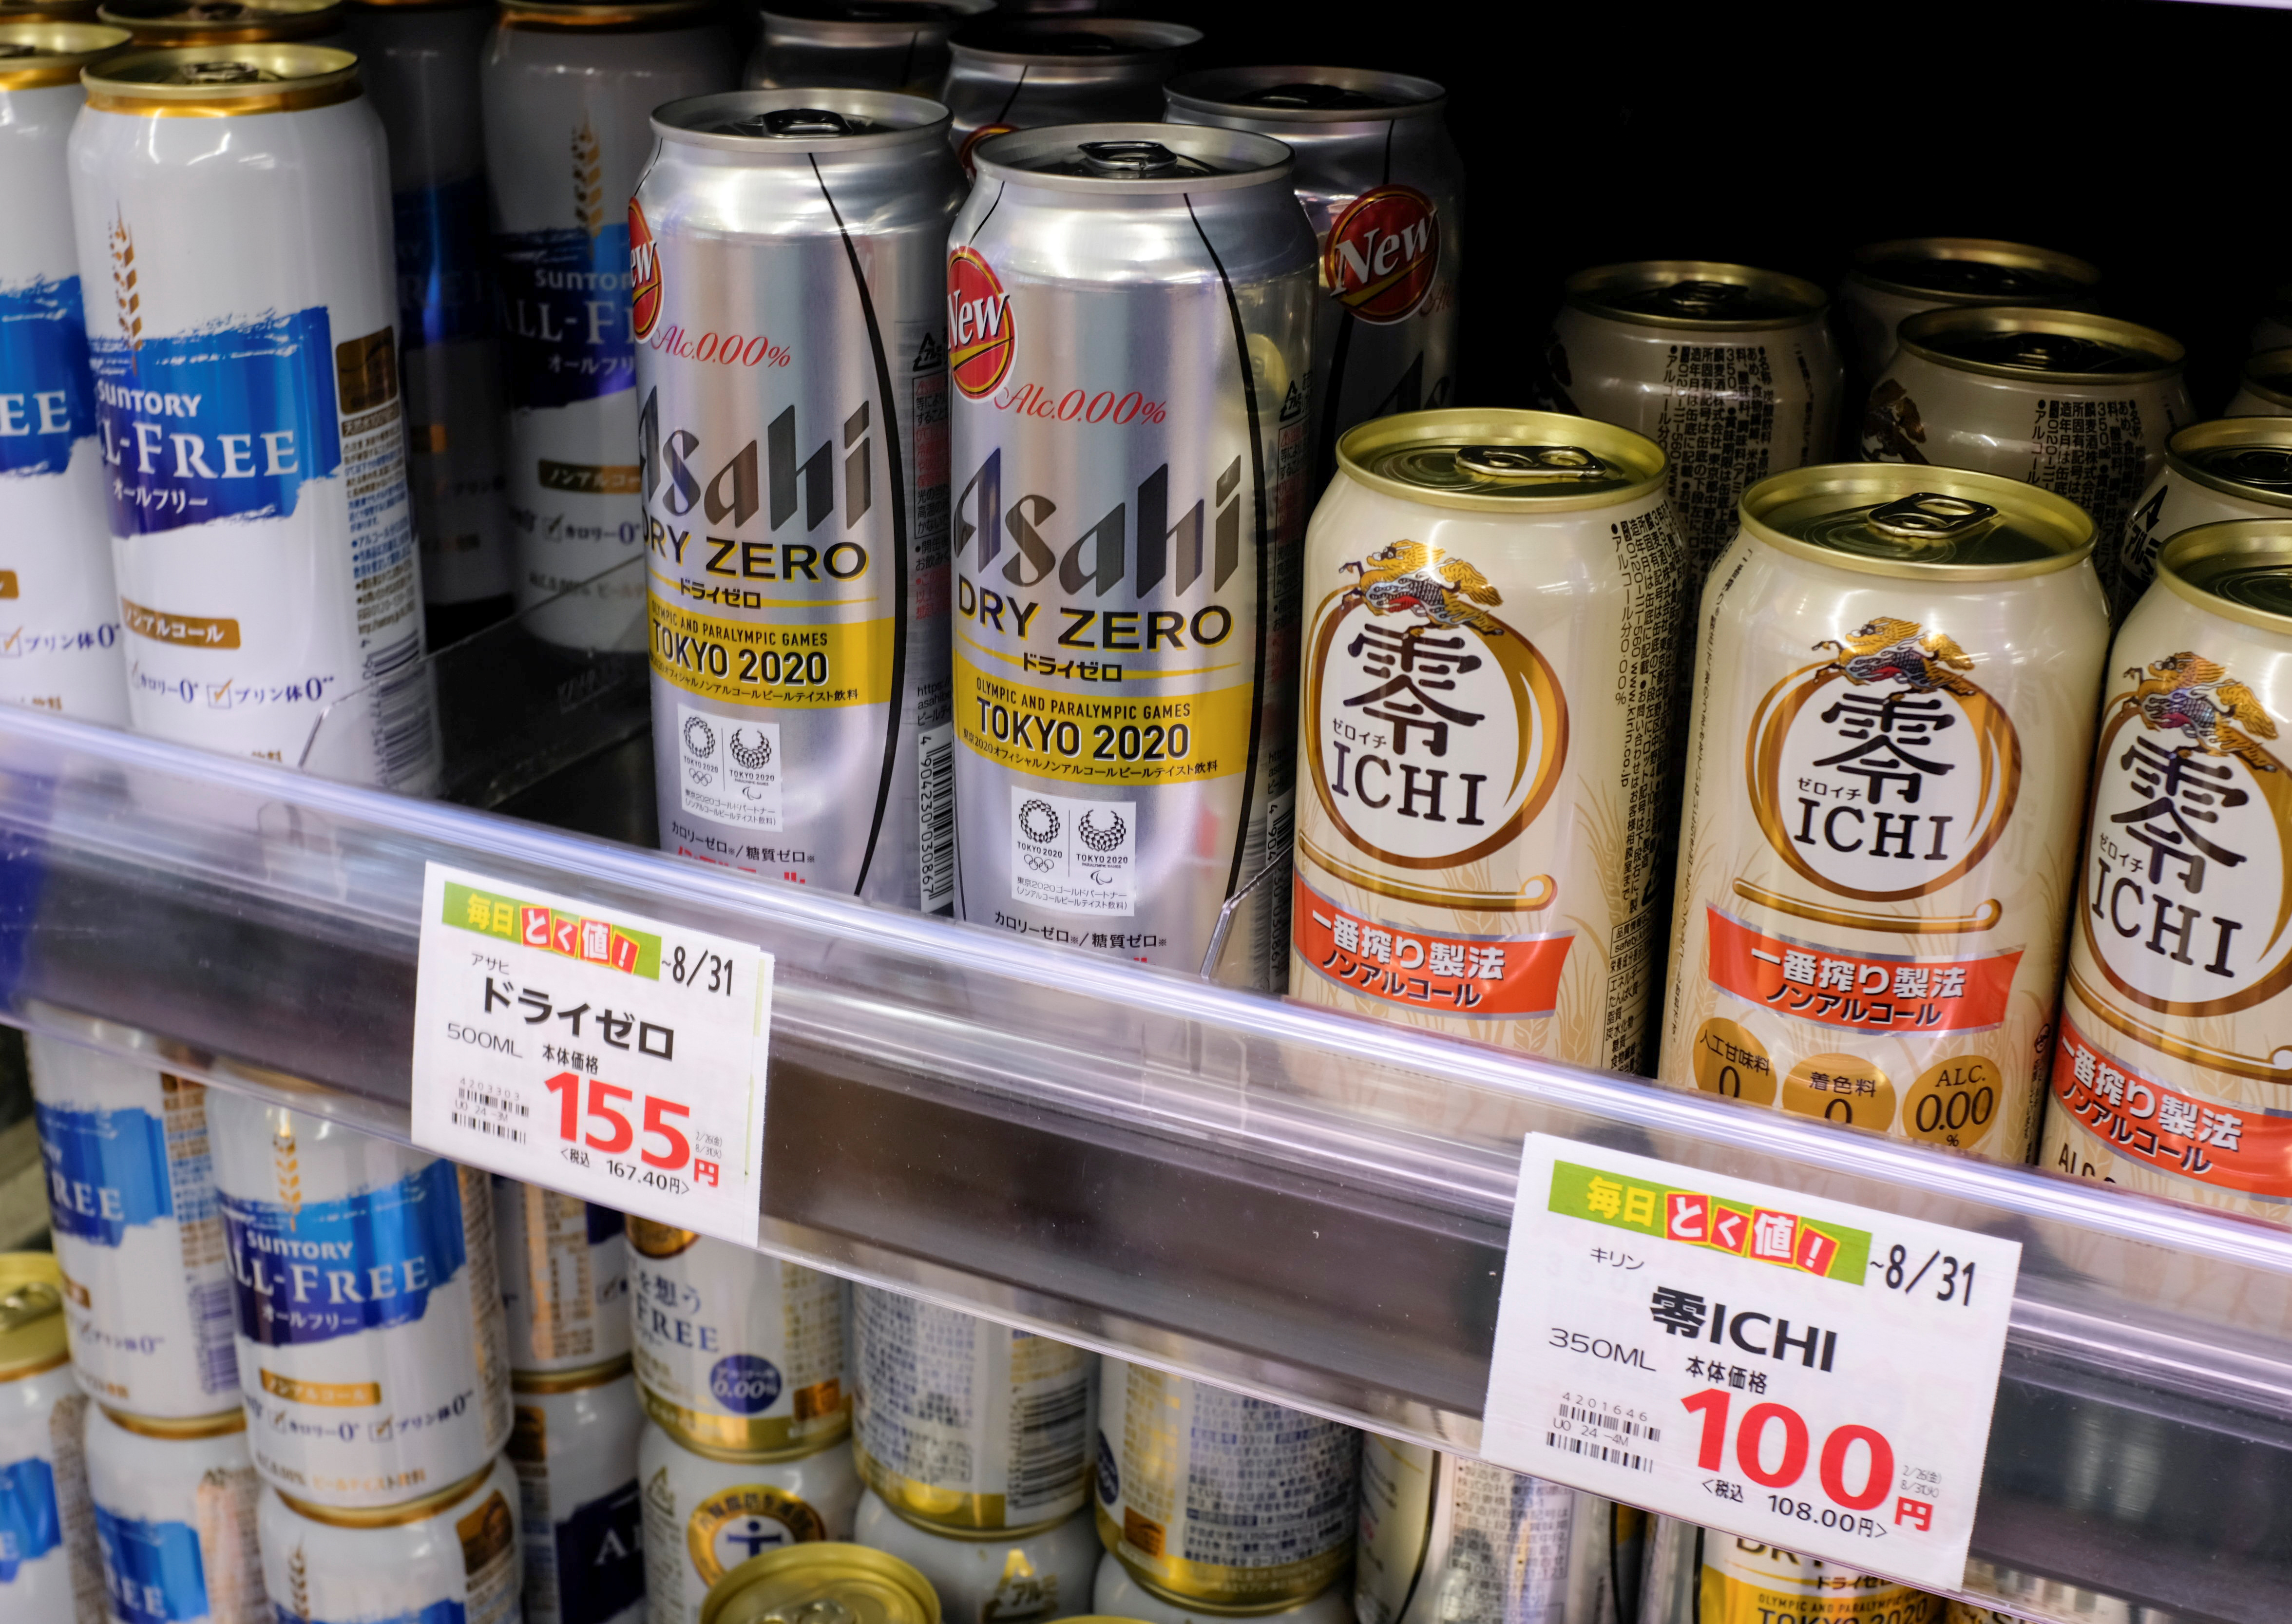 Various cans of alcohol-free beers, including those from Asahi, Kirin and Suntory, are displayed on a supermarket shelf in Tokyo, Japan March 9, 2021. Picture taken March 9, 2021.  REUTERS/Ritsuko Ando